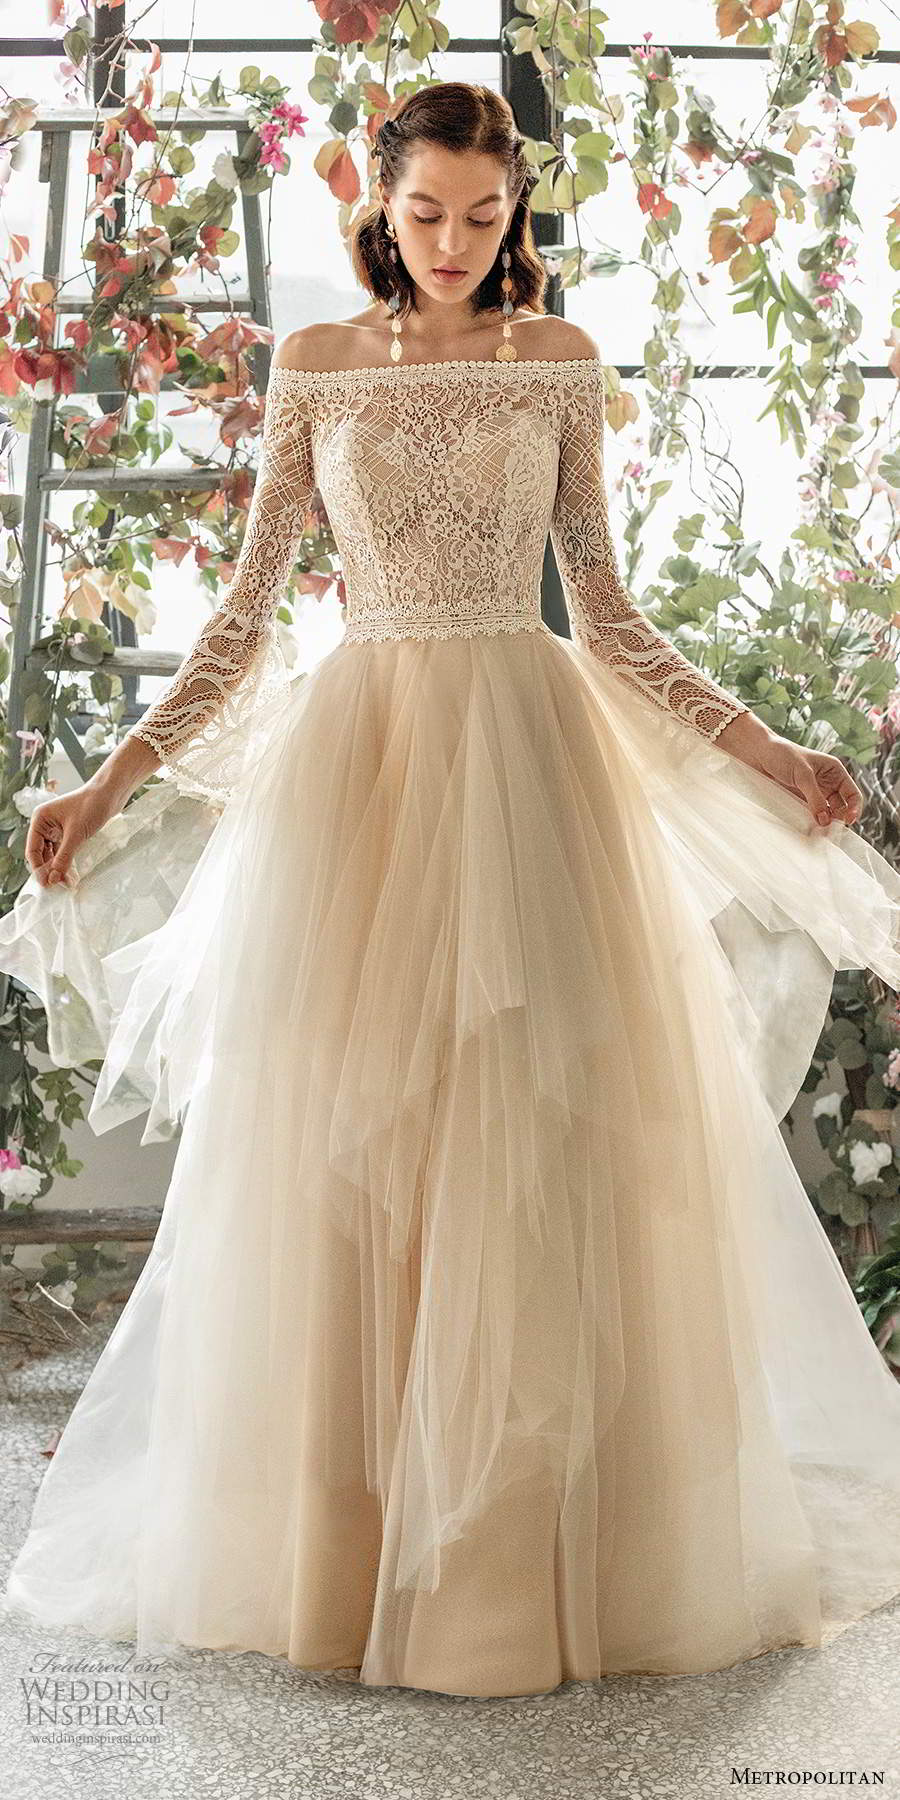 metropolitan spring 2020 bridal illusion long sleeve off shoulder straight across neckline embellished lace bodce tiered skirt ball gown a line wedding dress chapel train (2) mv